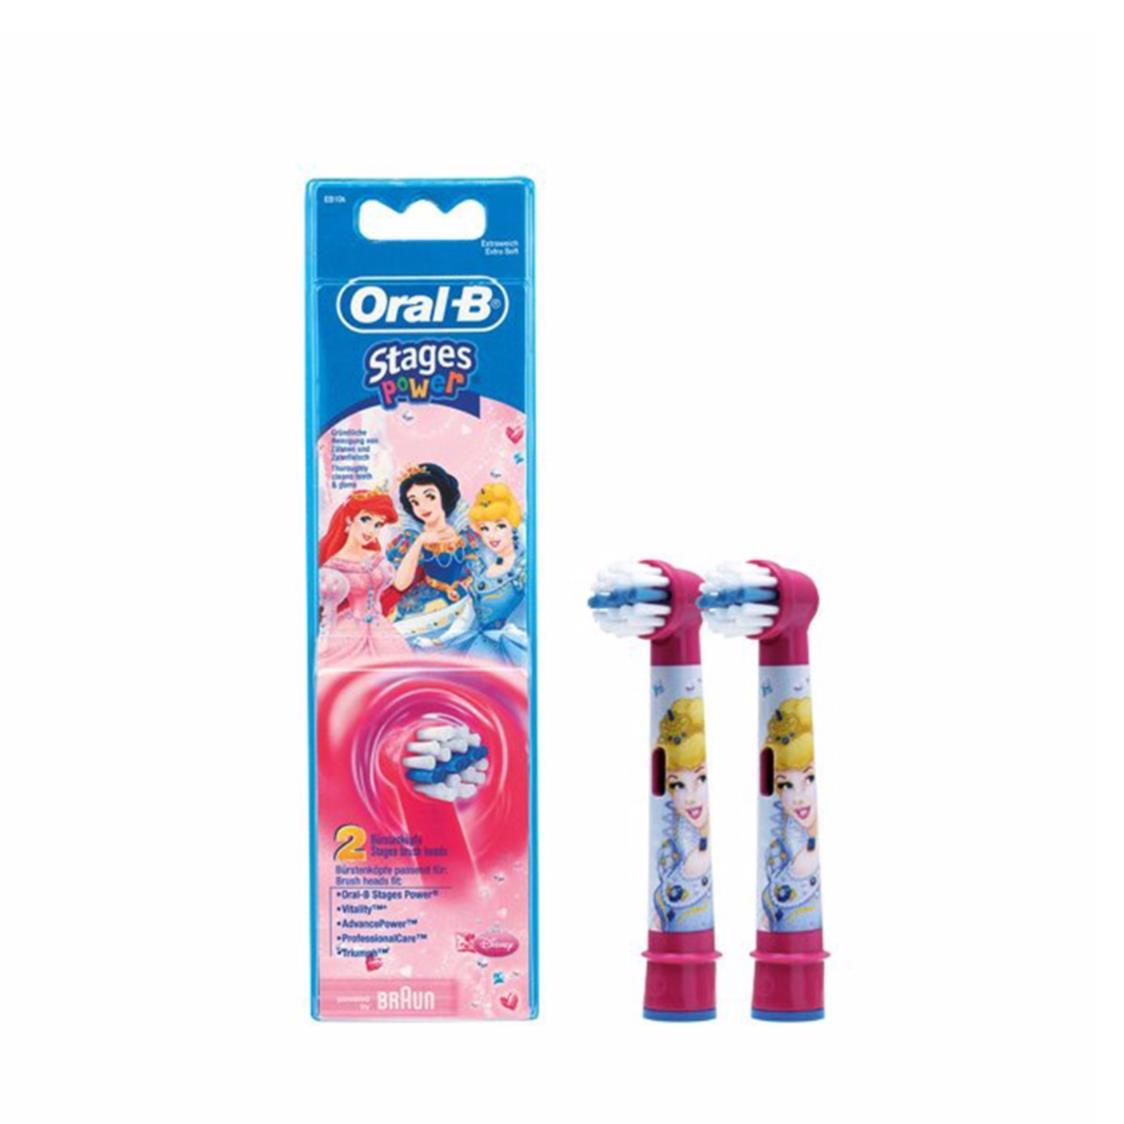 BRAUN Oral B Stages Power Refill